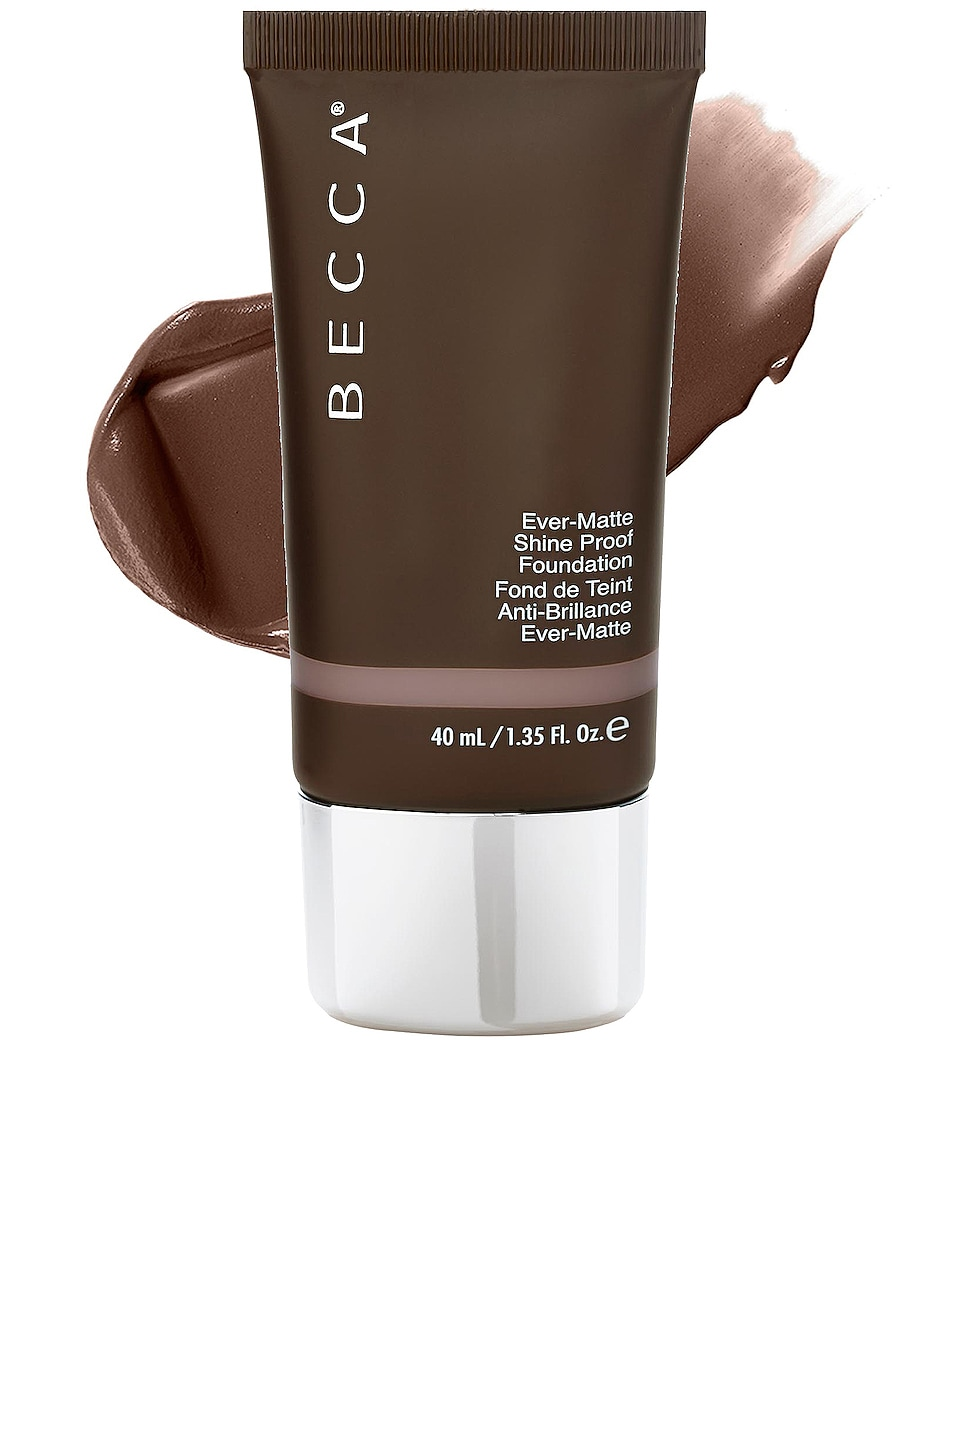 BECCA Ever-Matte Shine Proof Foundation in Cacao